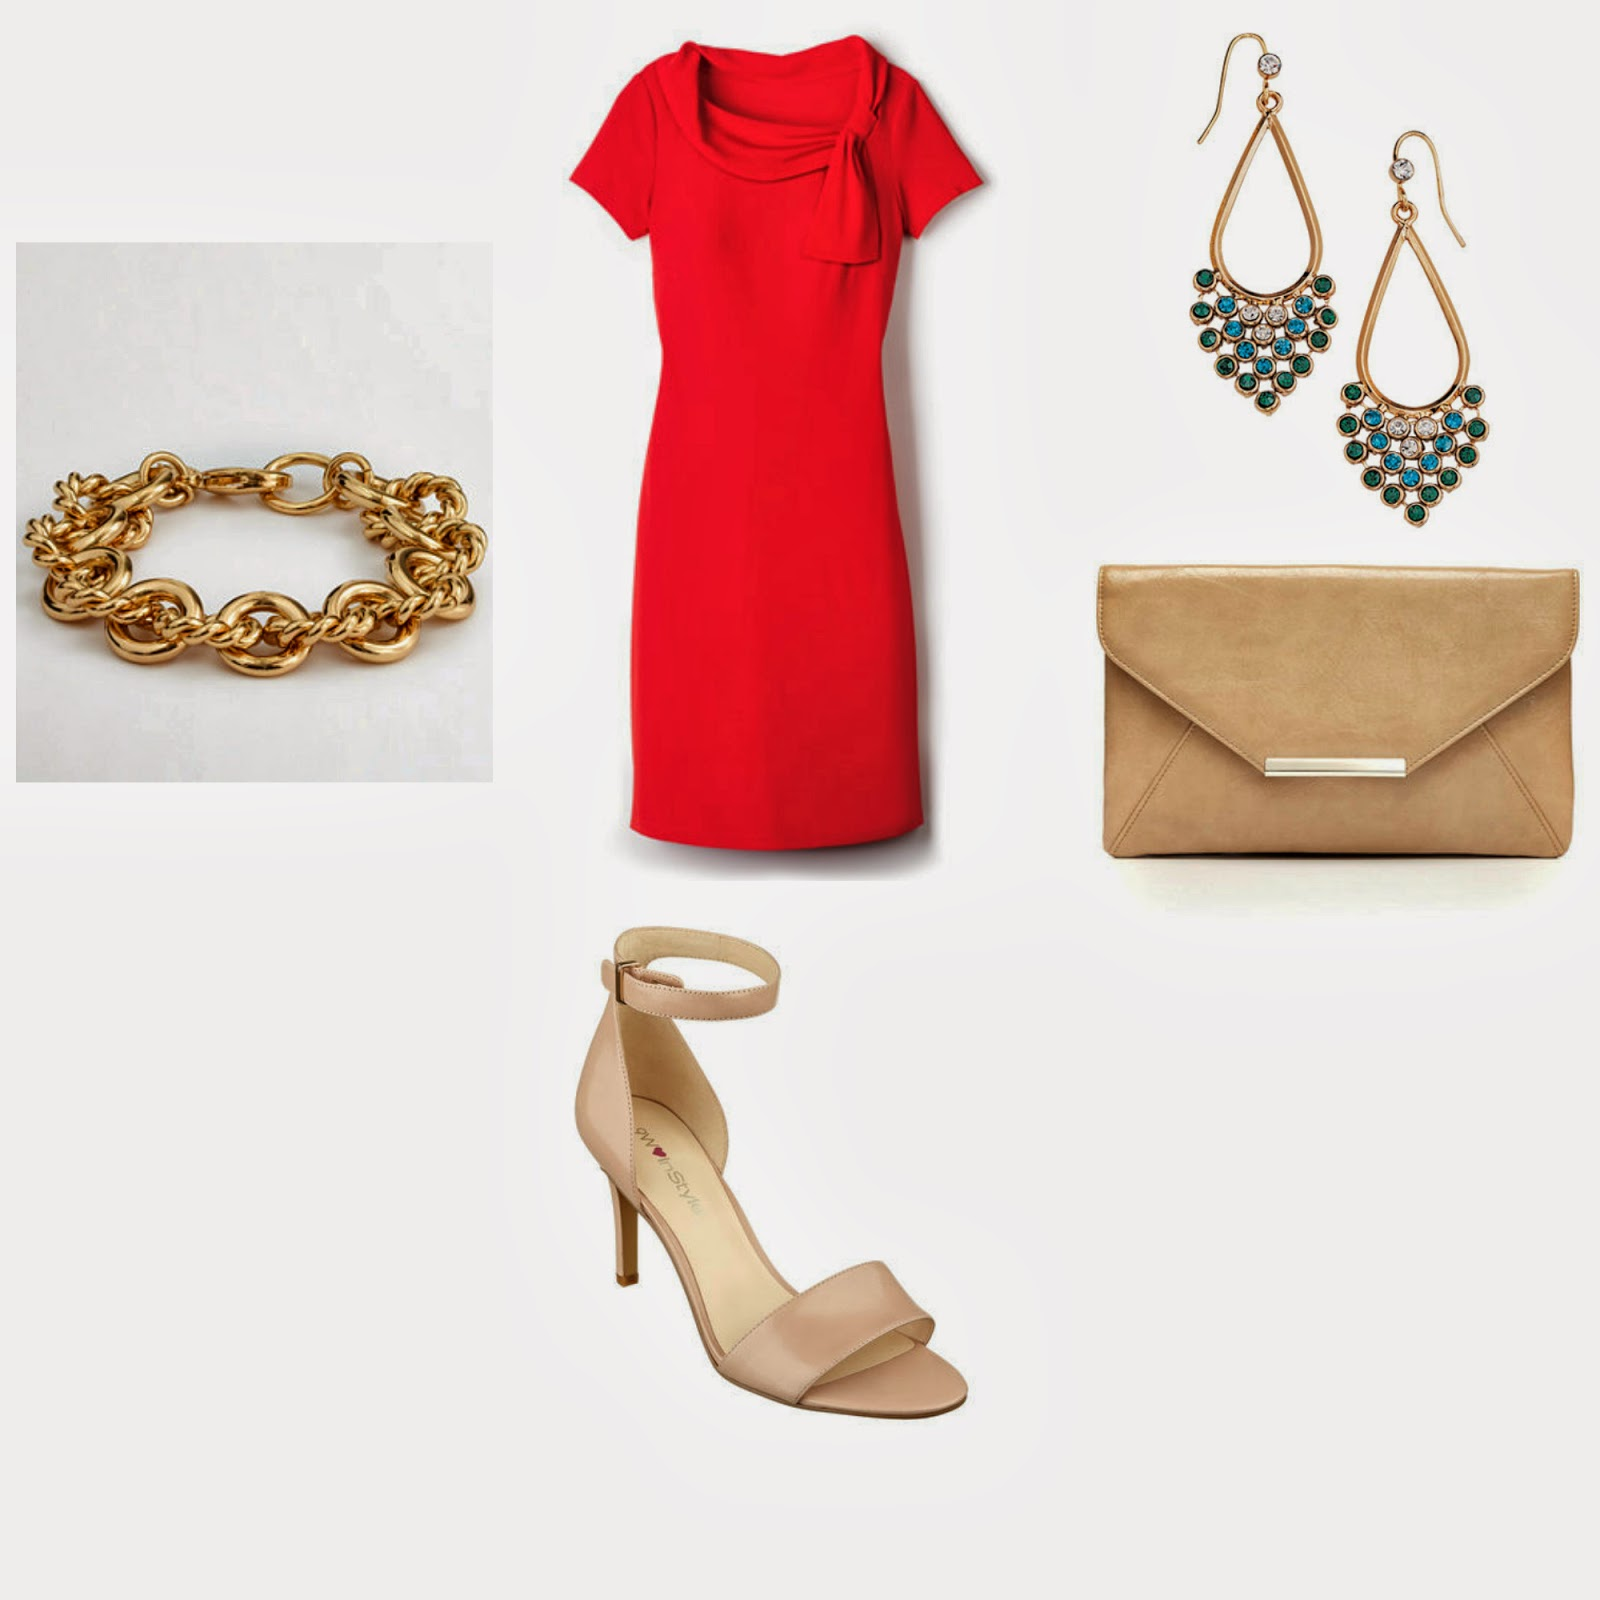 what to wear with a red dress, Green chandelier earrings, J crew bracelet, Nude Sandals